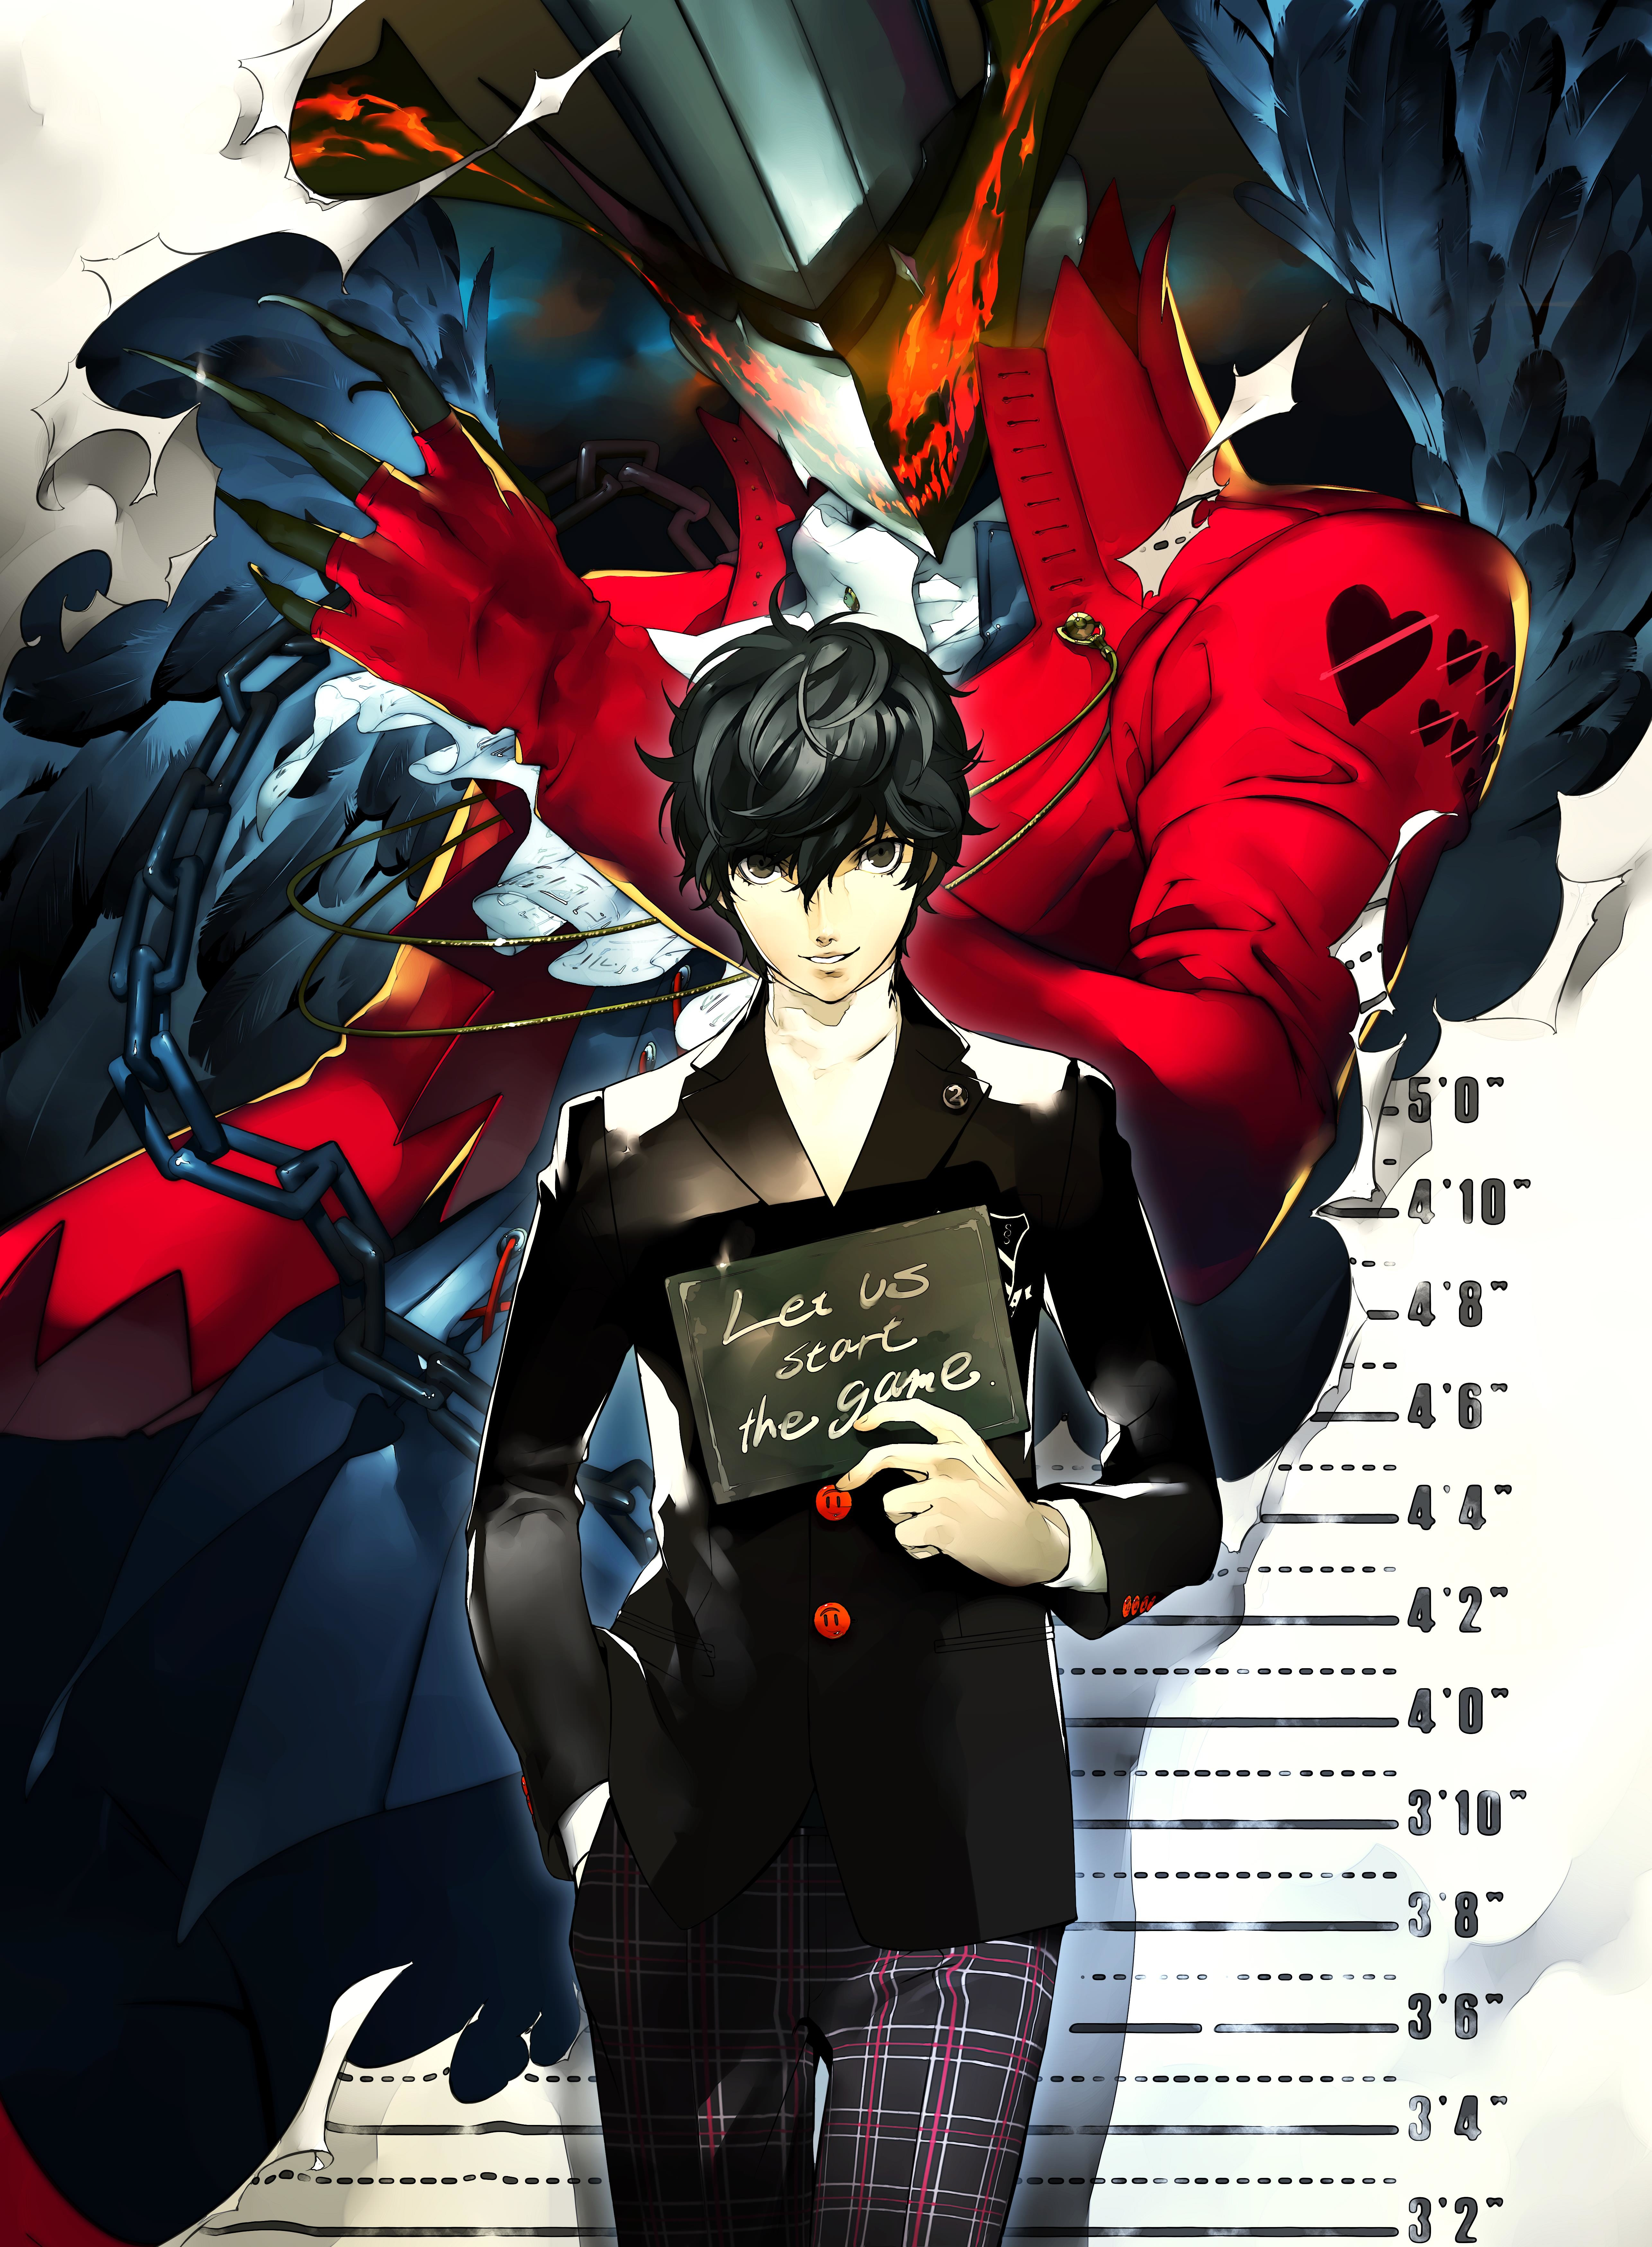 Persona 5 Wallpaper Hd Games 4k Wallpapers Images Photos And